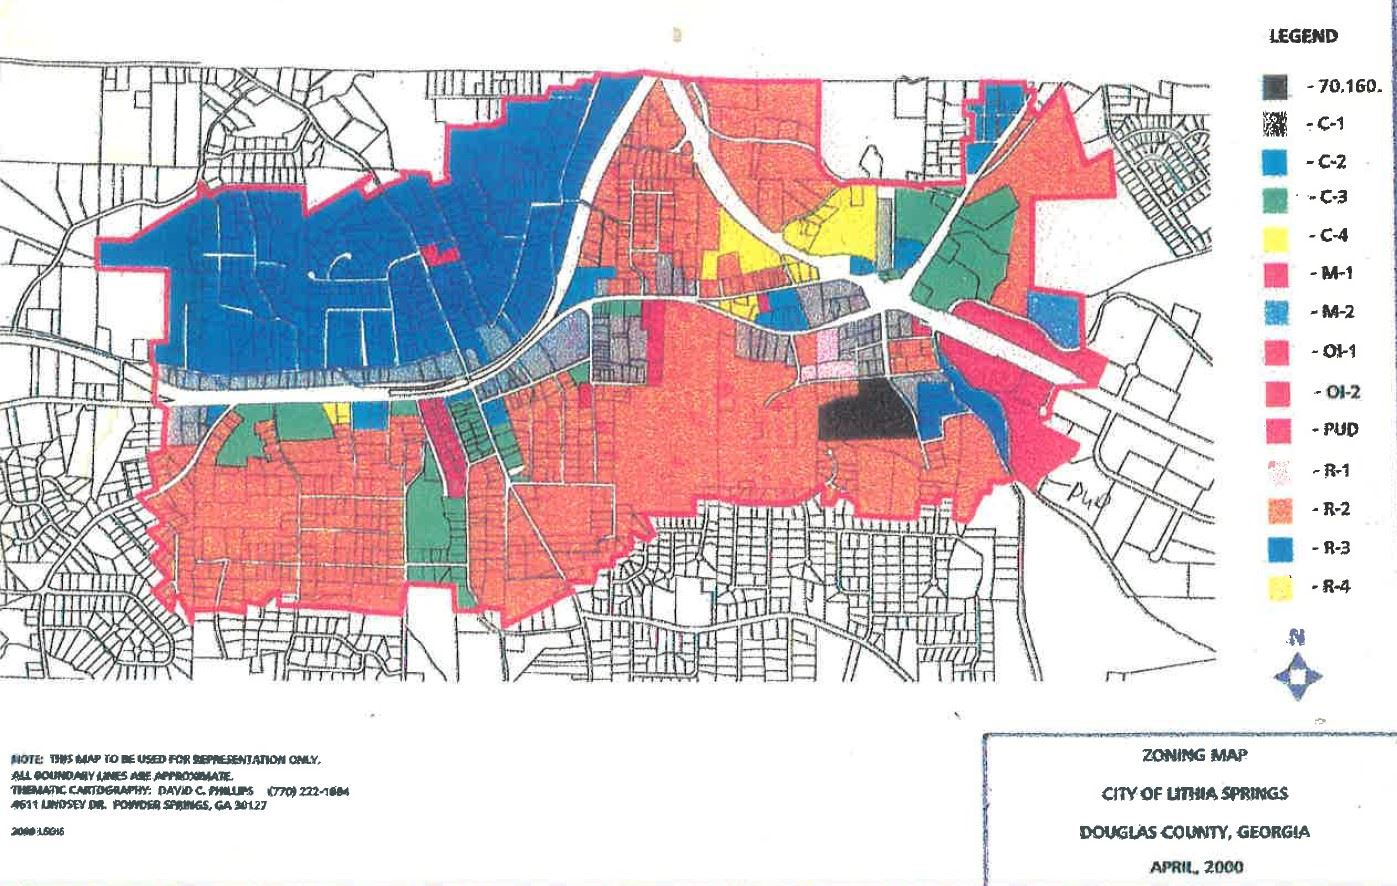 Lithia Springs Zoning Map 2000